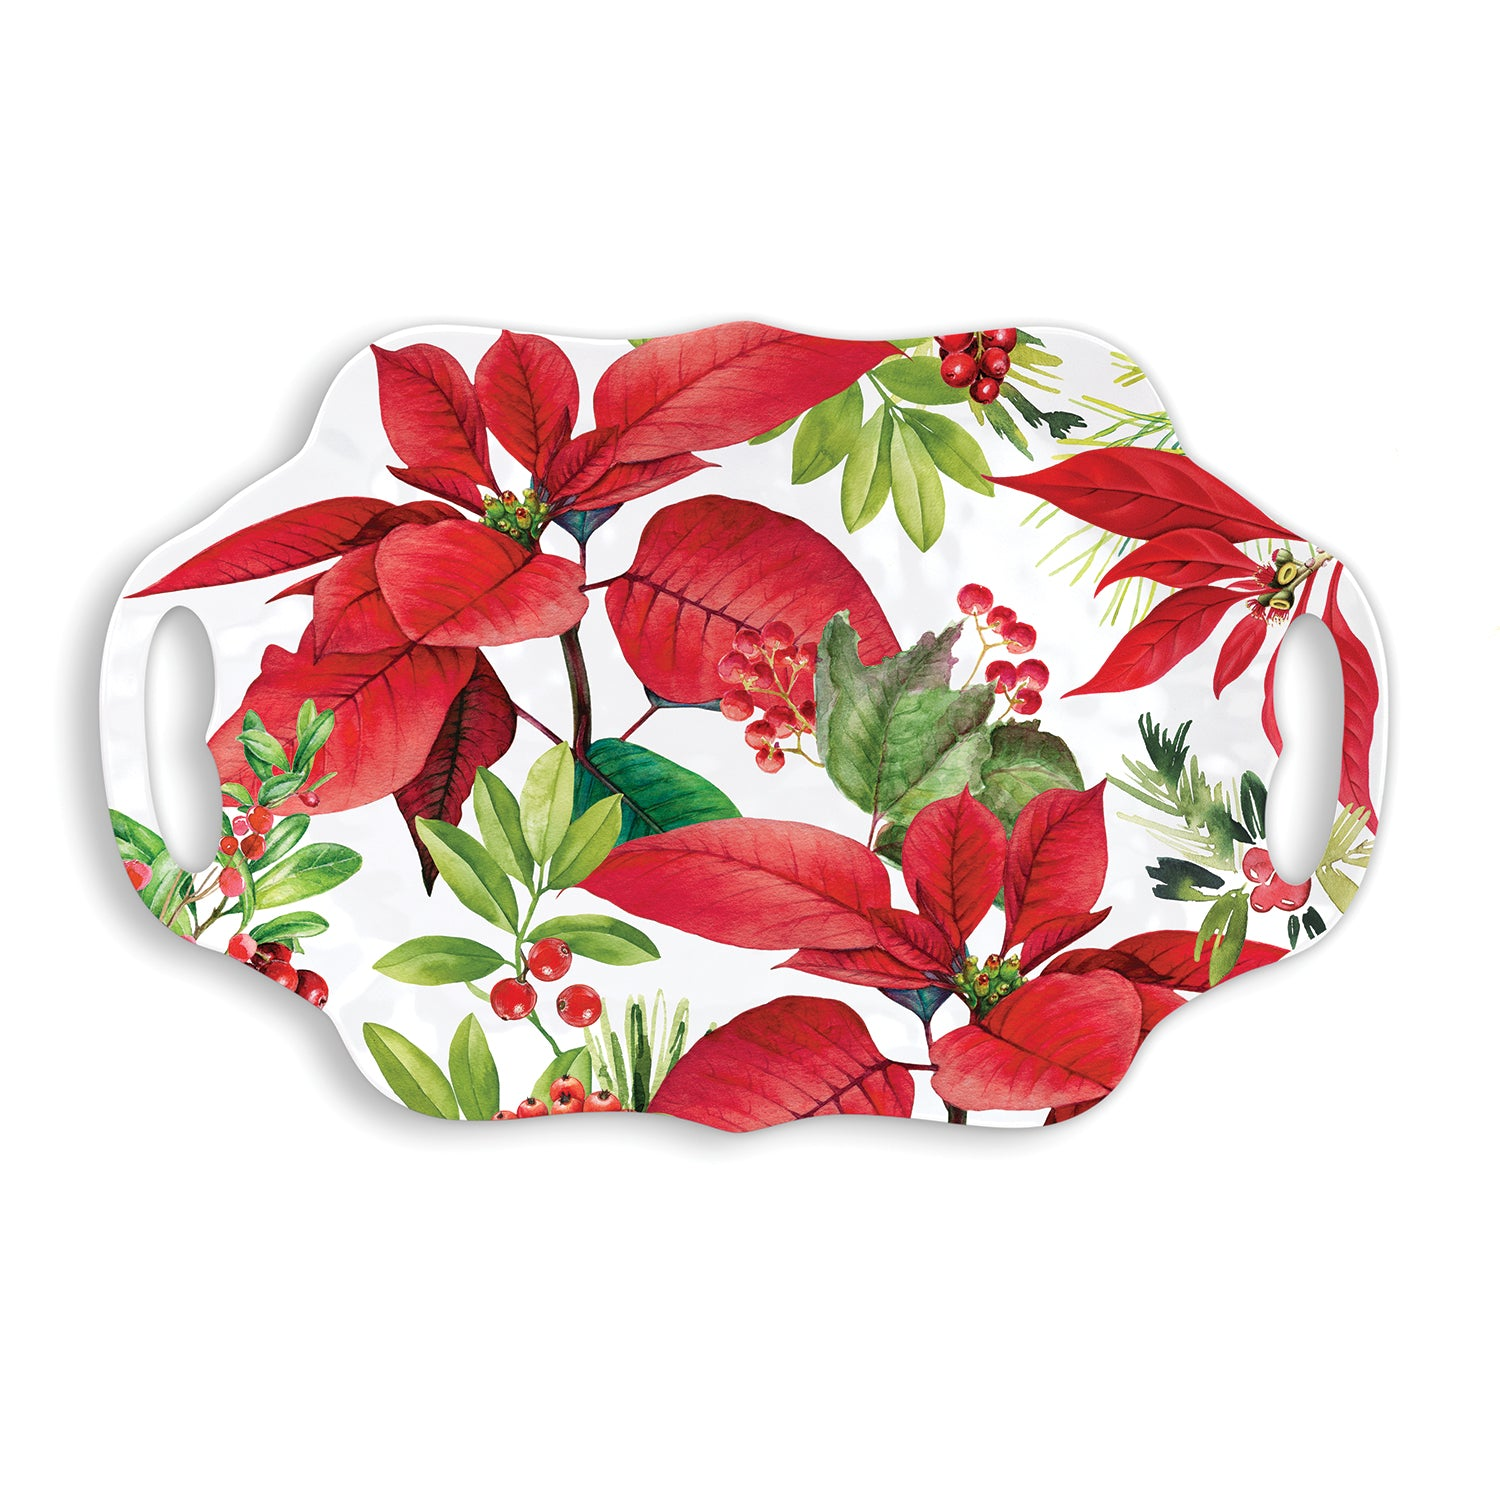 Poinsettia Melamine Serveware Serving Tray